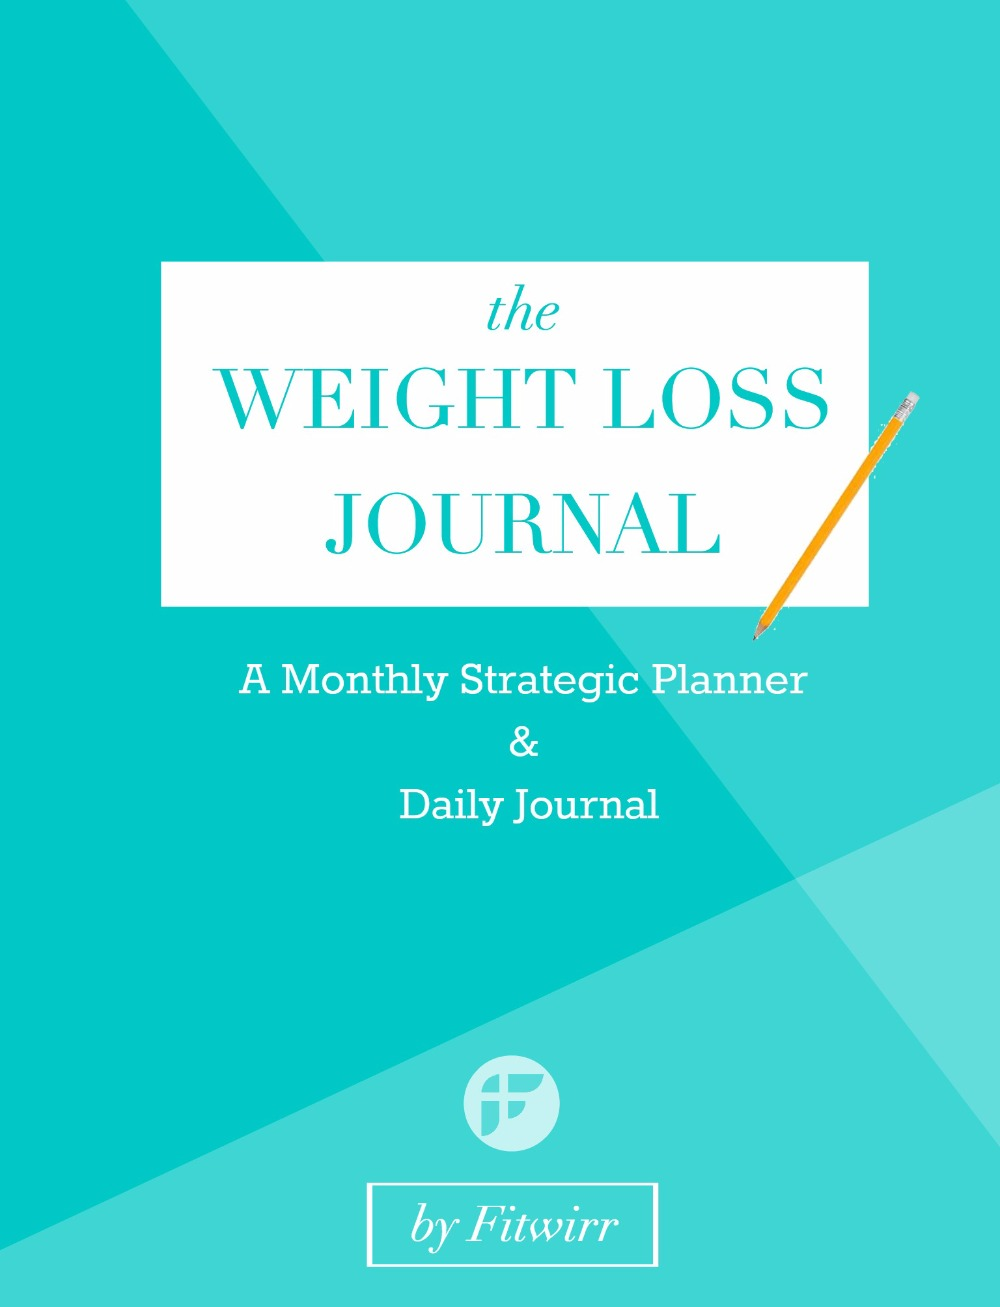 The Weight Loss Journal